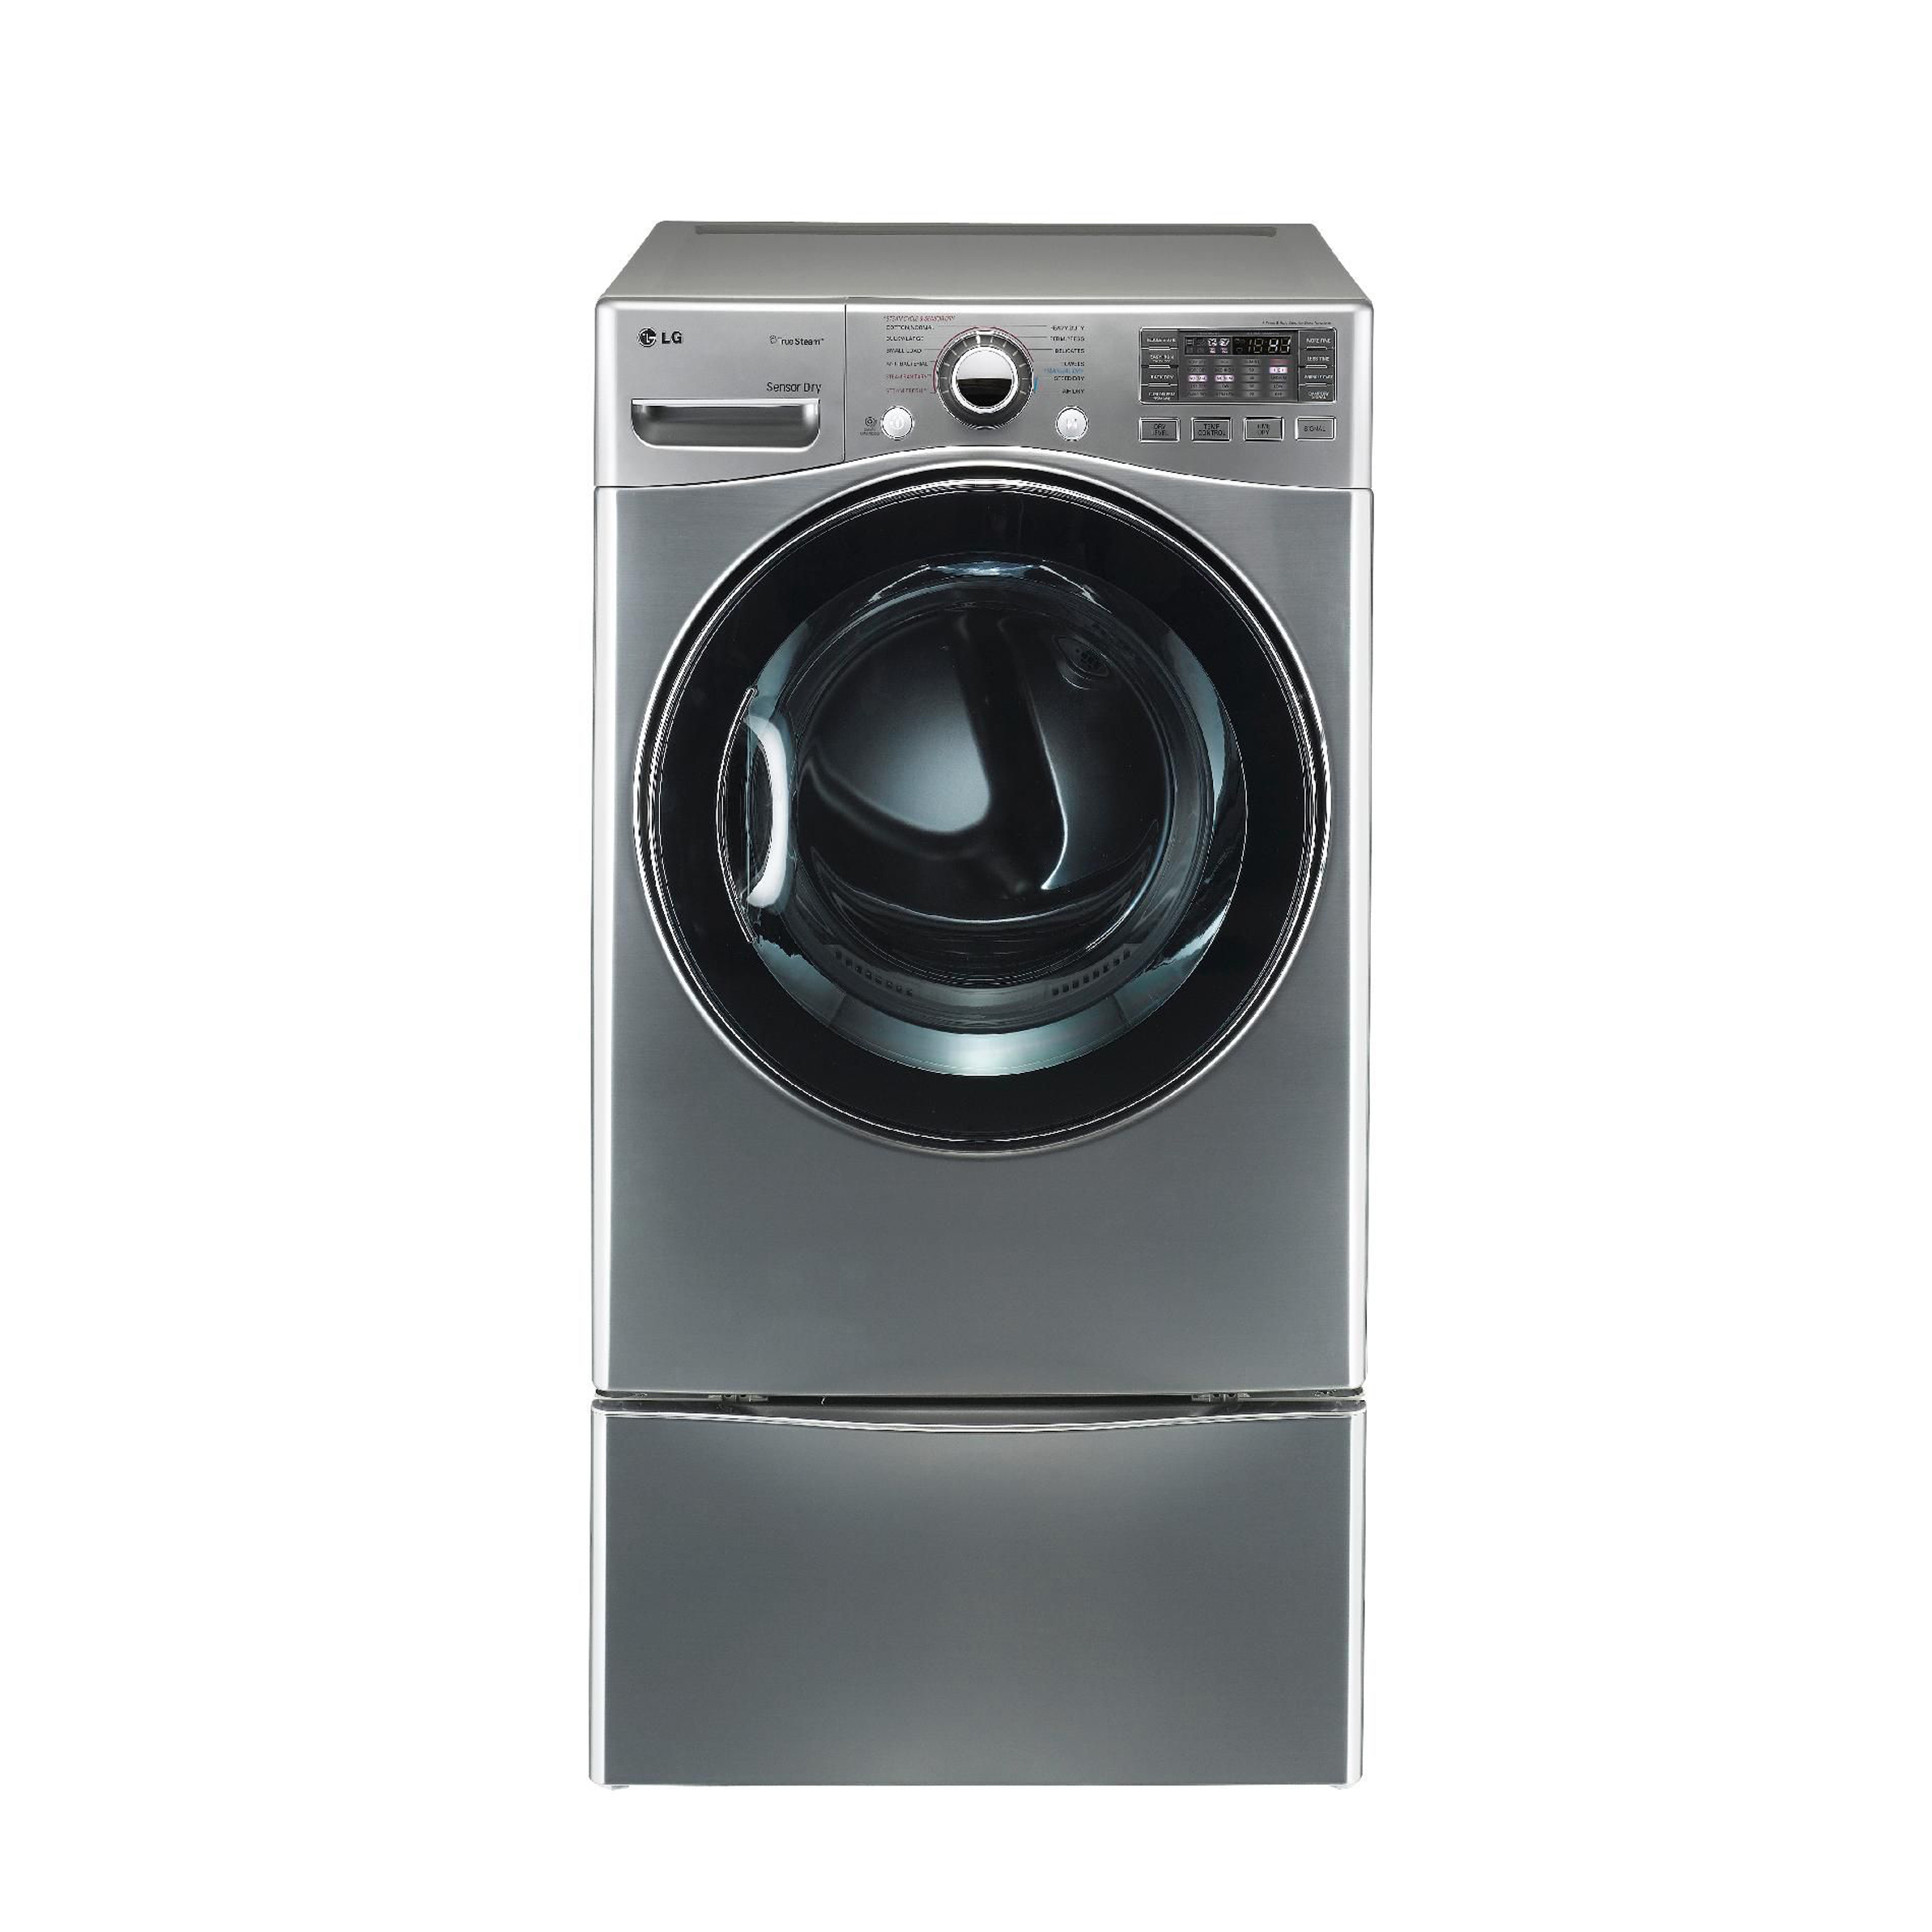 LG 7.3 cu. ft. Steam Electric Dryer w/ Sensor Dry - Graphite Steel